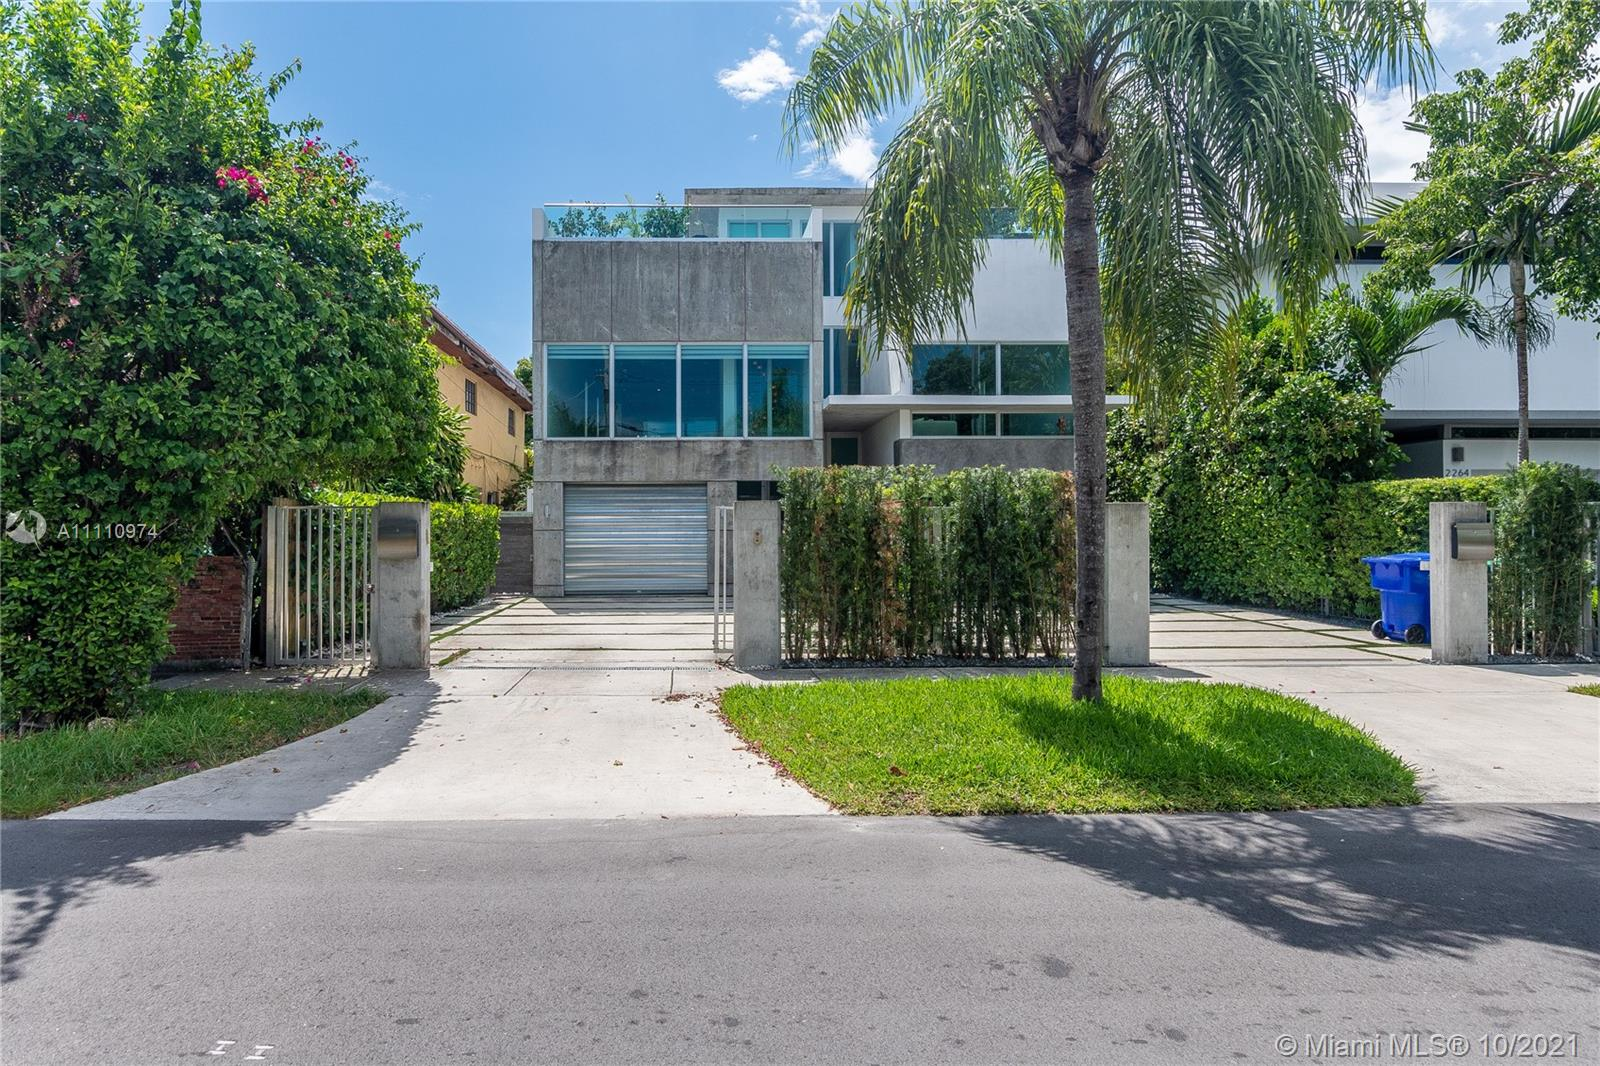 Single Family Home,For Rent,2270 SW 16th Ave #2270, Miami, Florida 33145,Brickell,realty,broker,condos near me